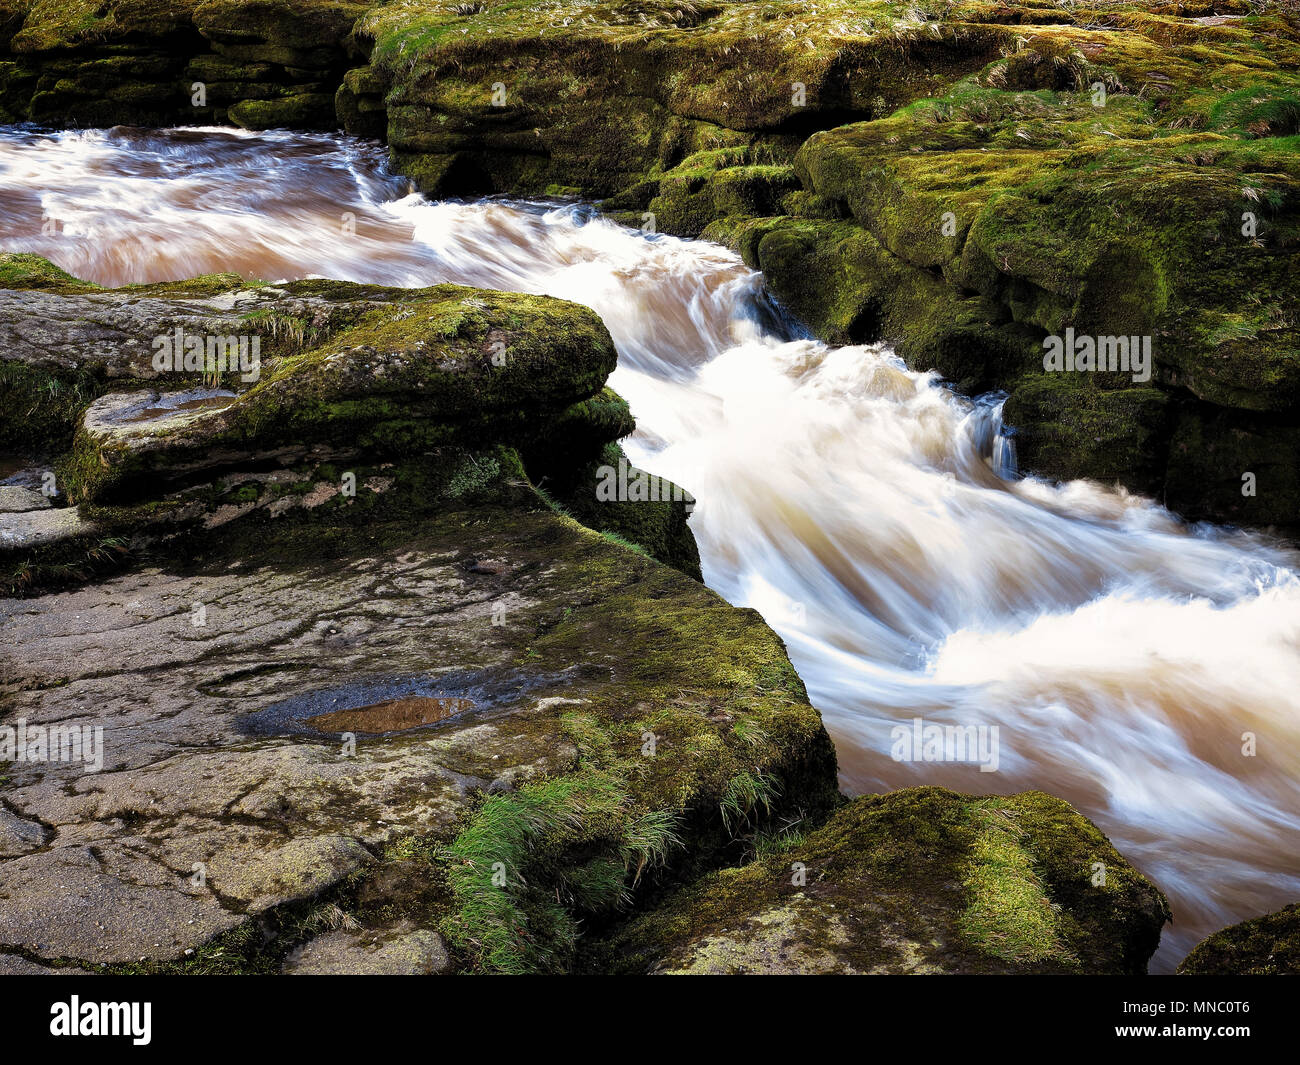 The gushing waters of The Strid, a dangerous section of the River Wharfe near Bolton Abbey - Stock Image